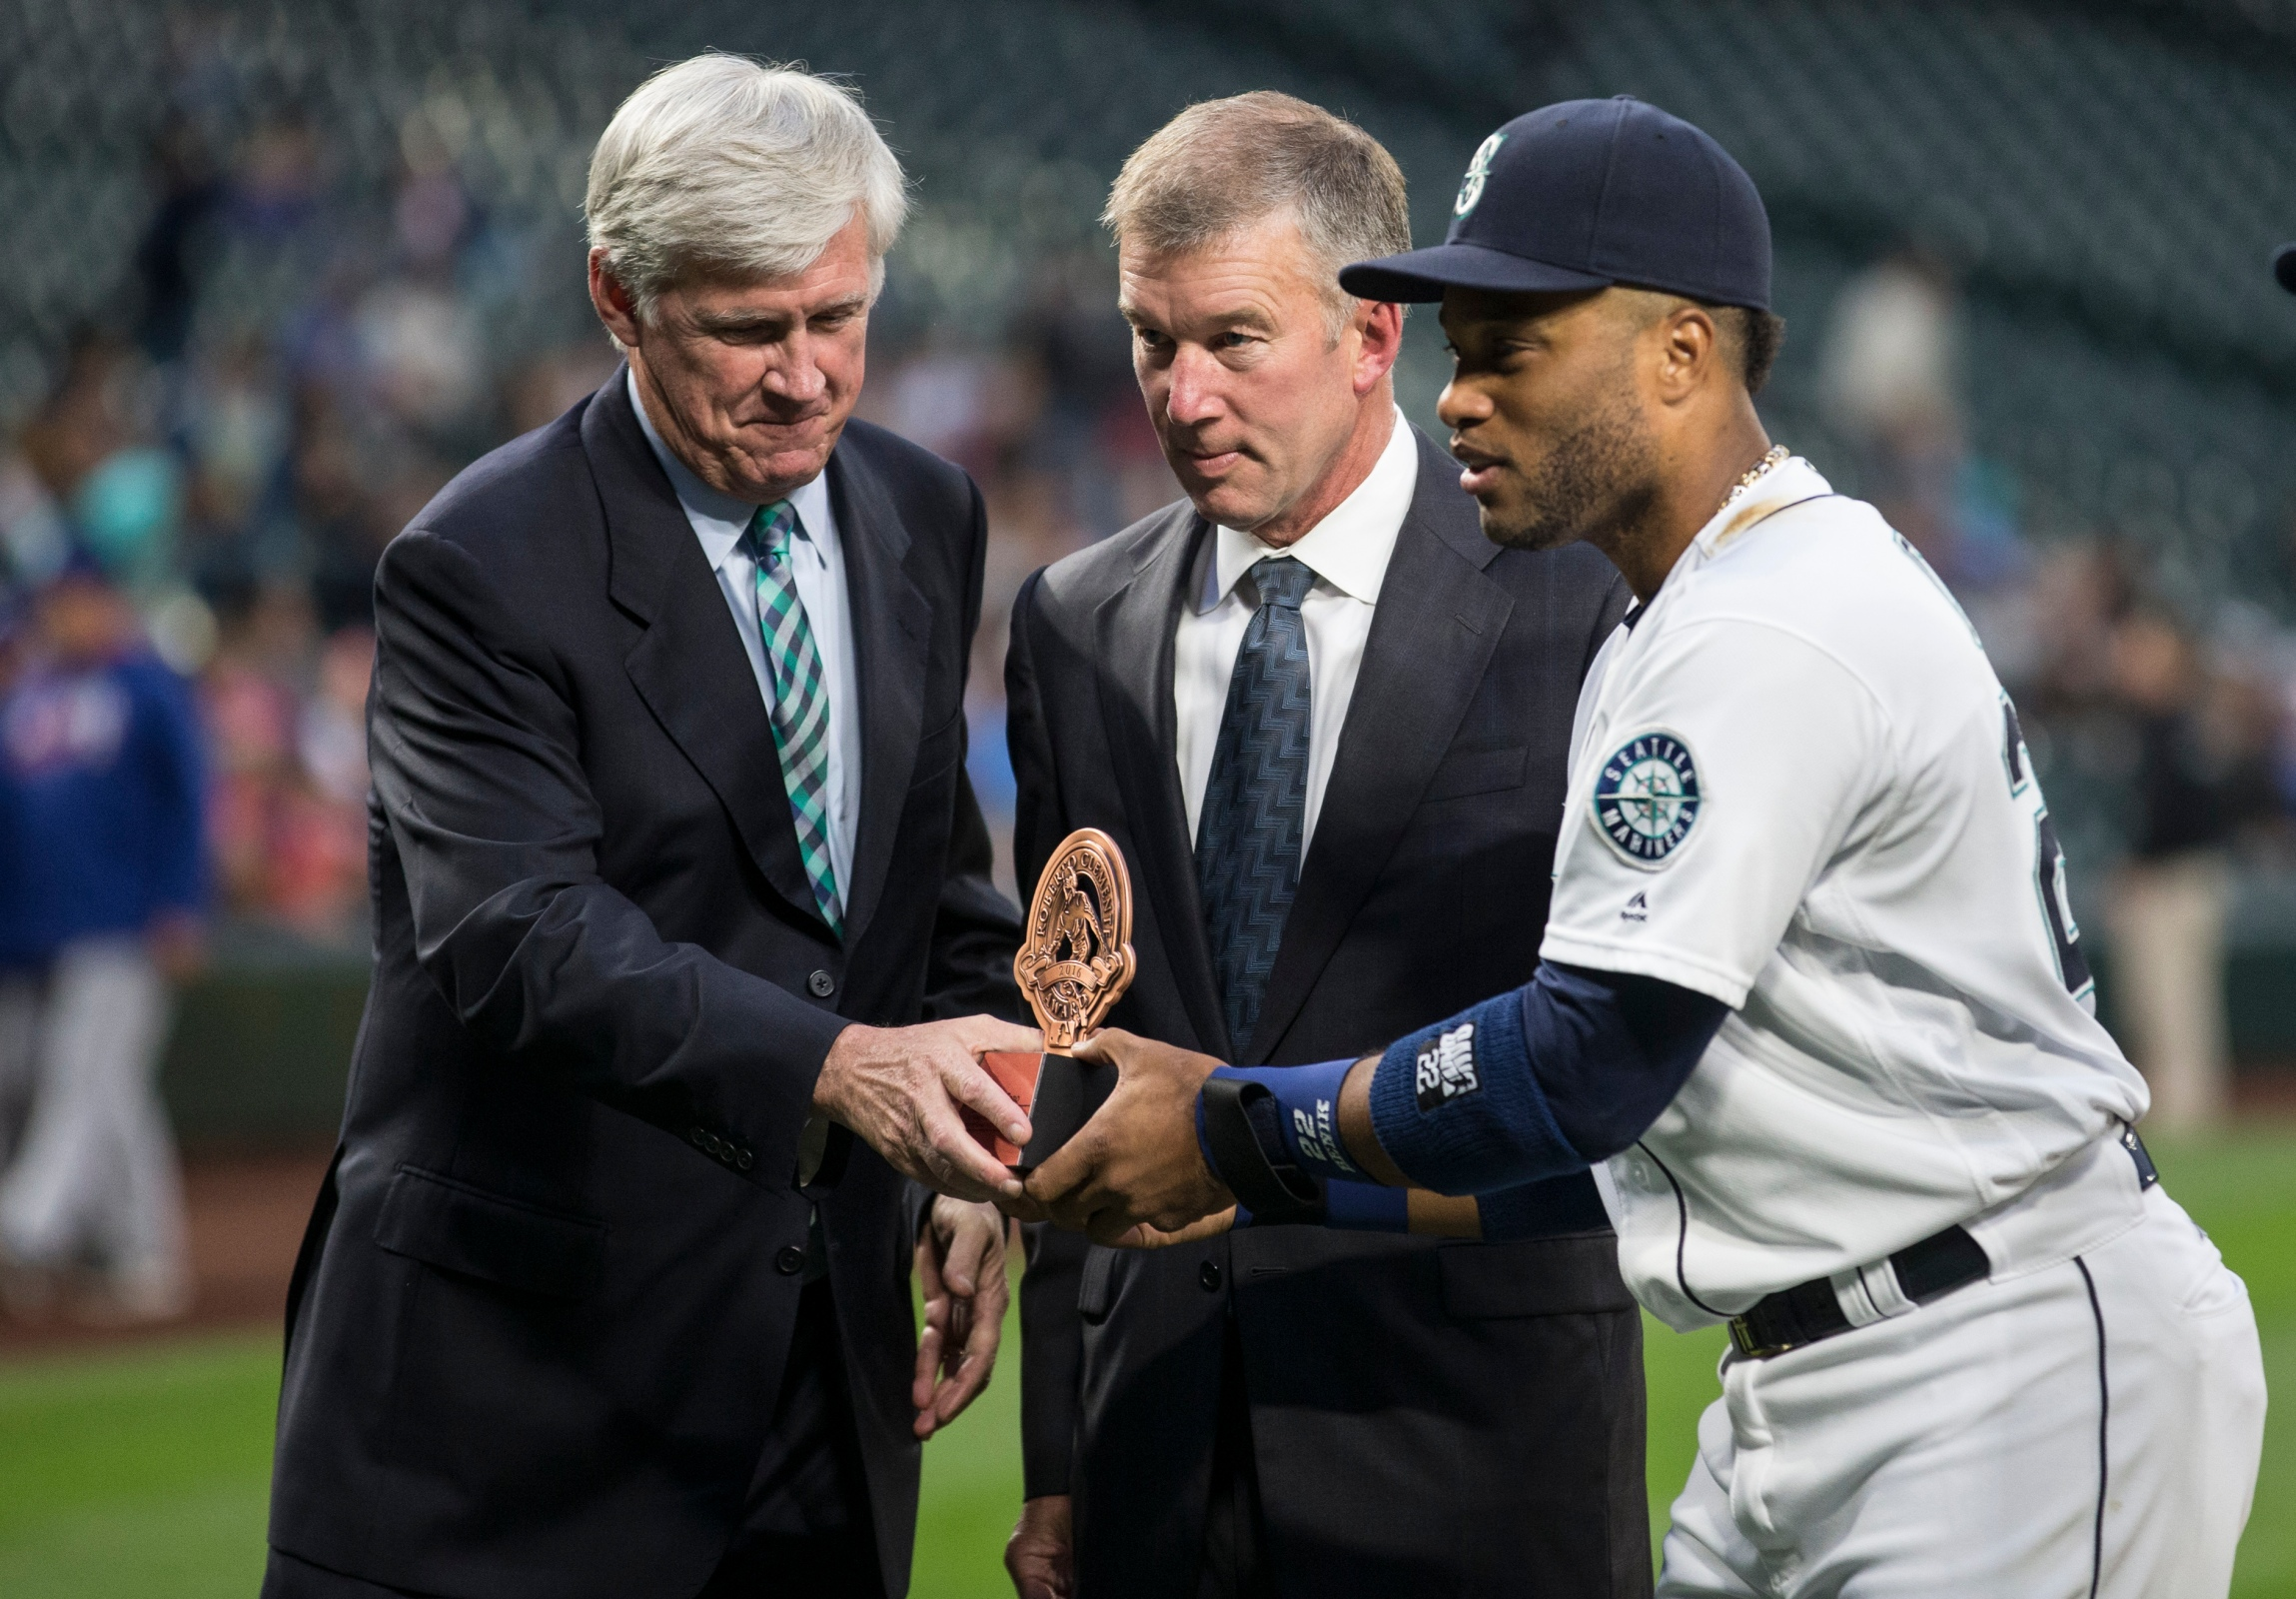 Former Mariners CEO Kevin Mather with owner John Stanton and Robinson Cano